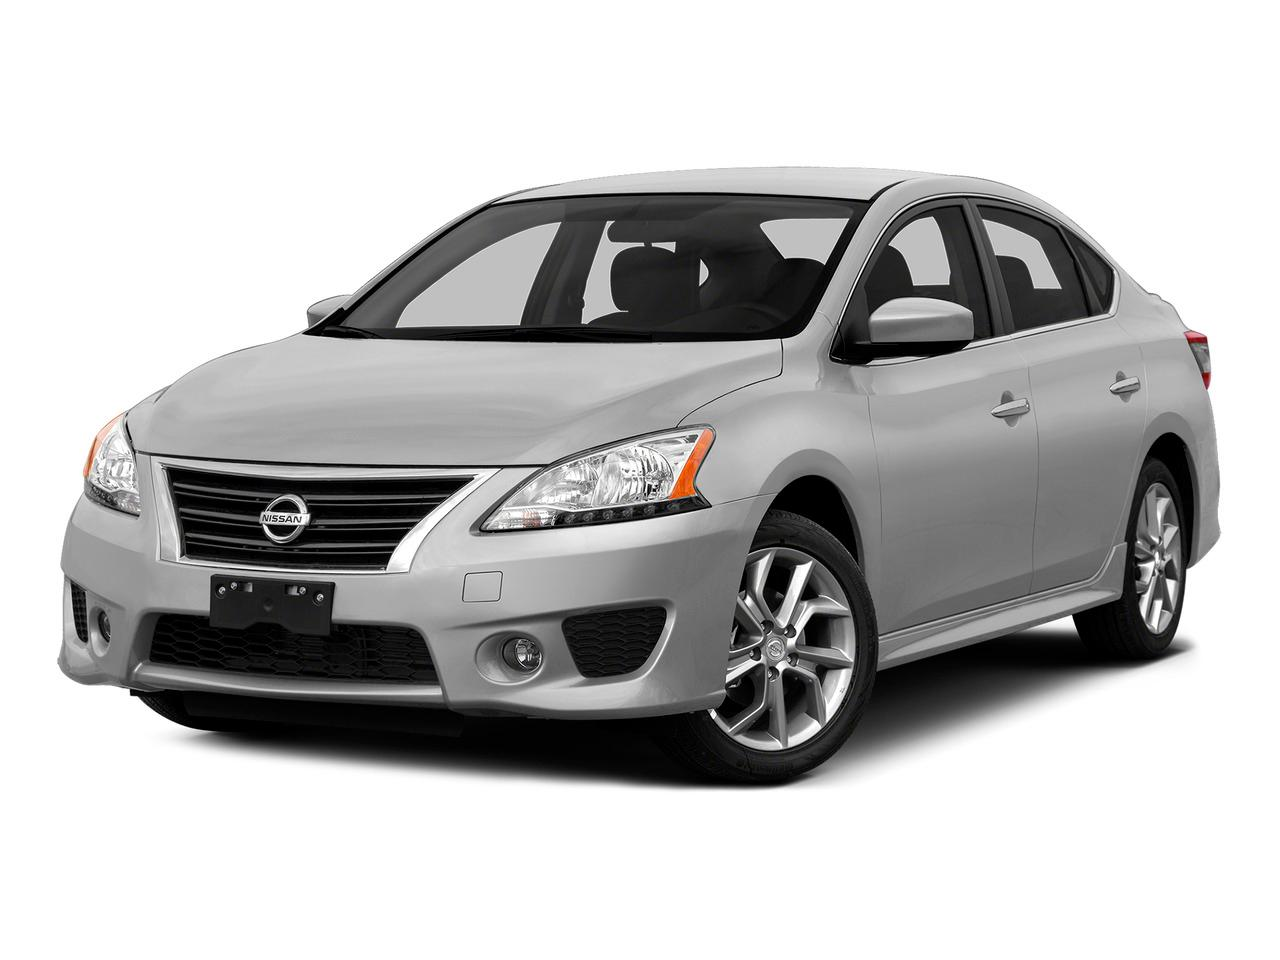 2015 Nissan Sentra Vehicle Photo in Pittsburgh, PA 15226